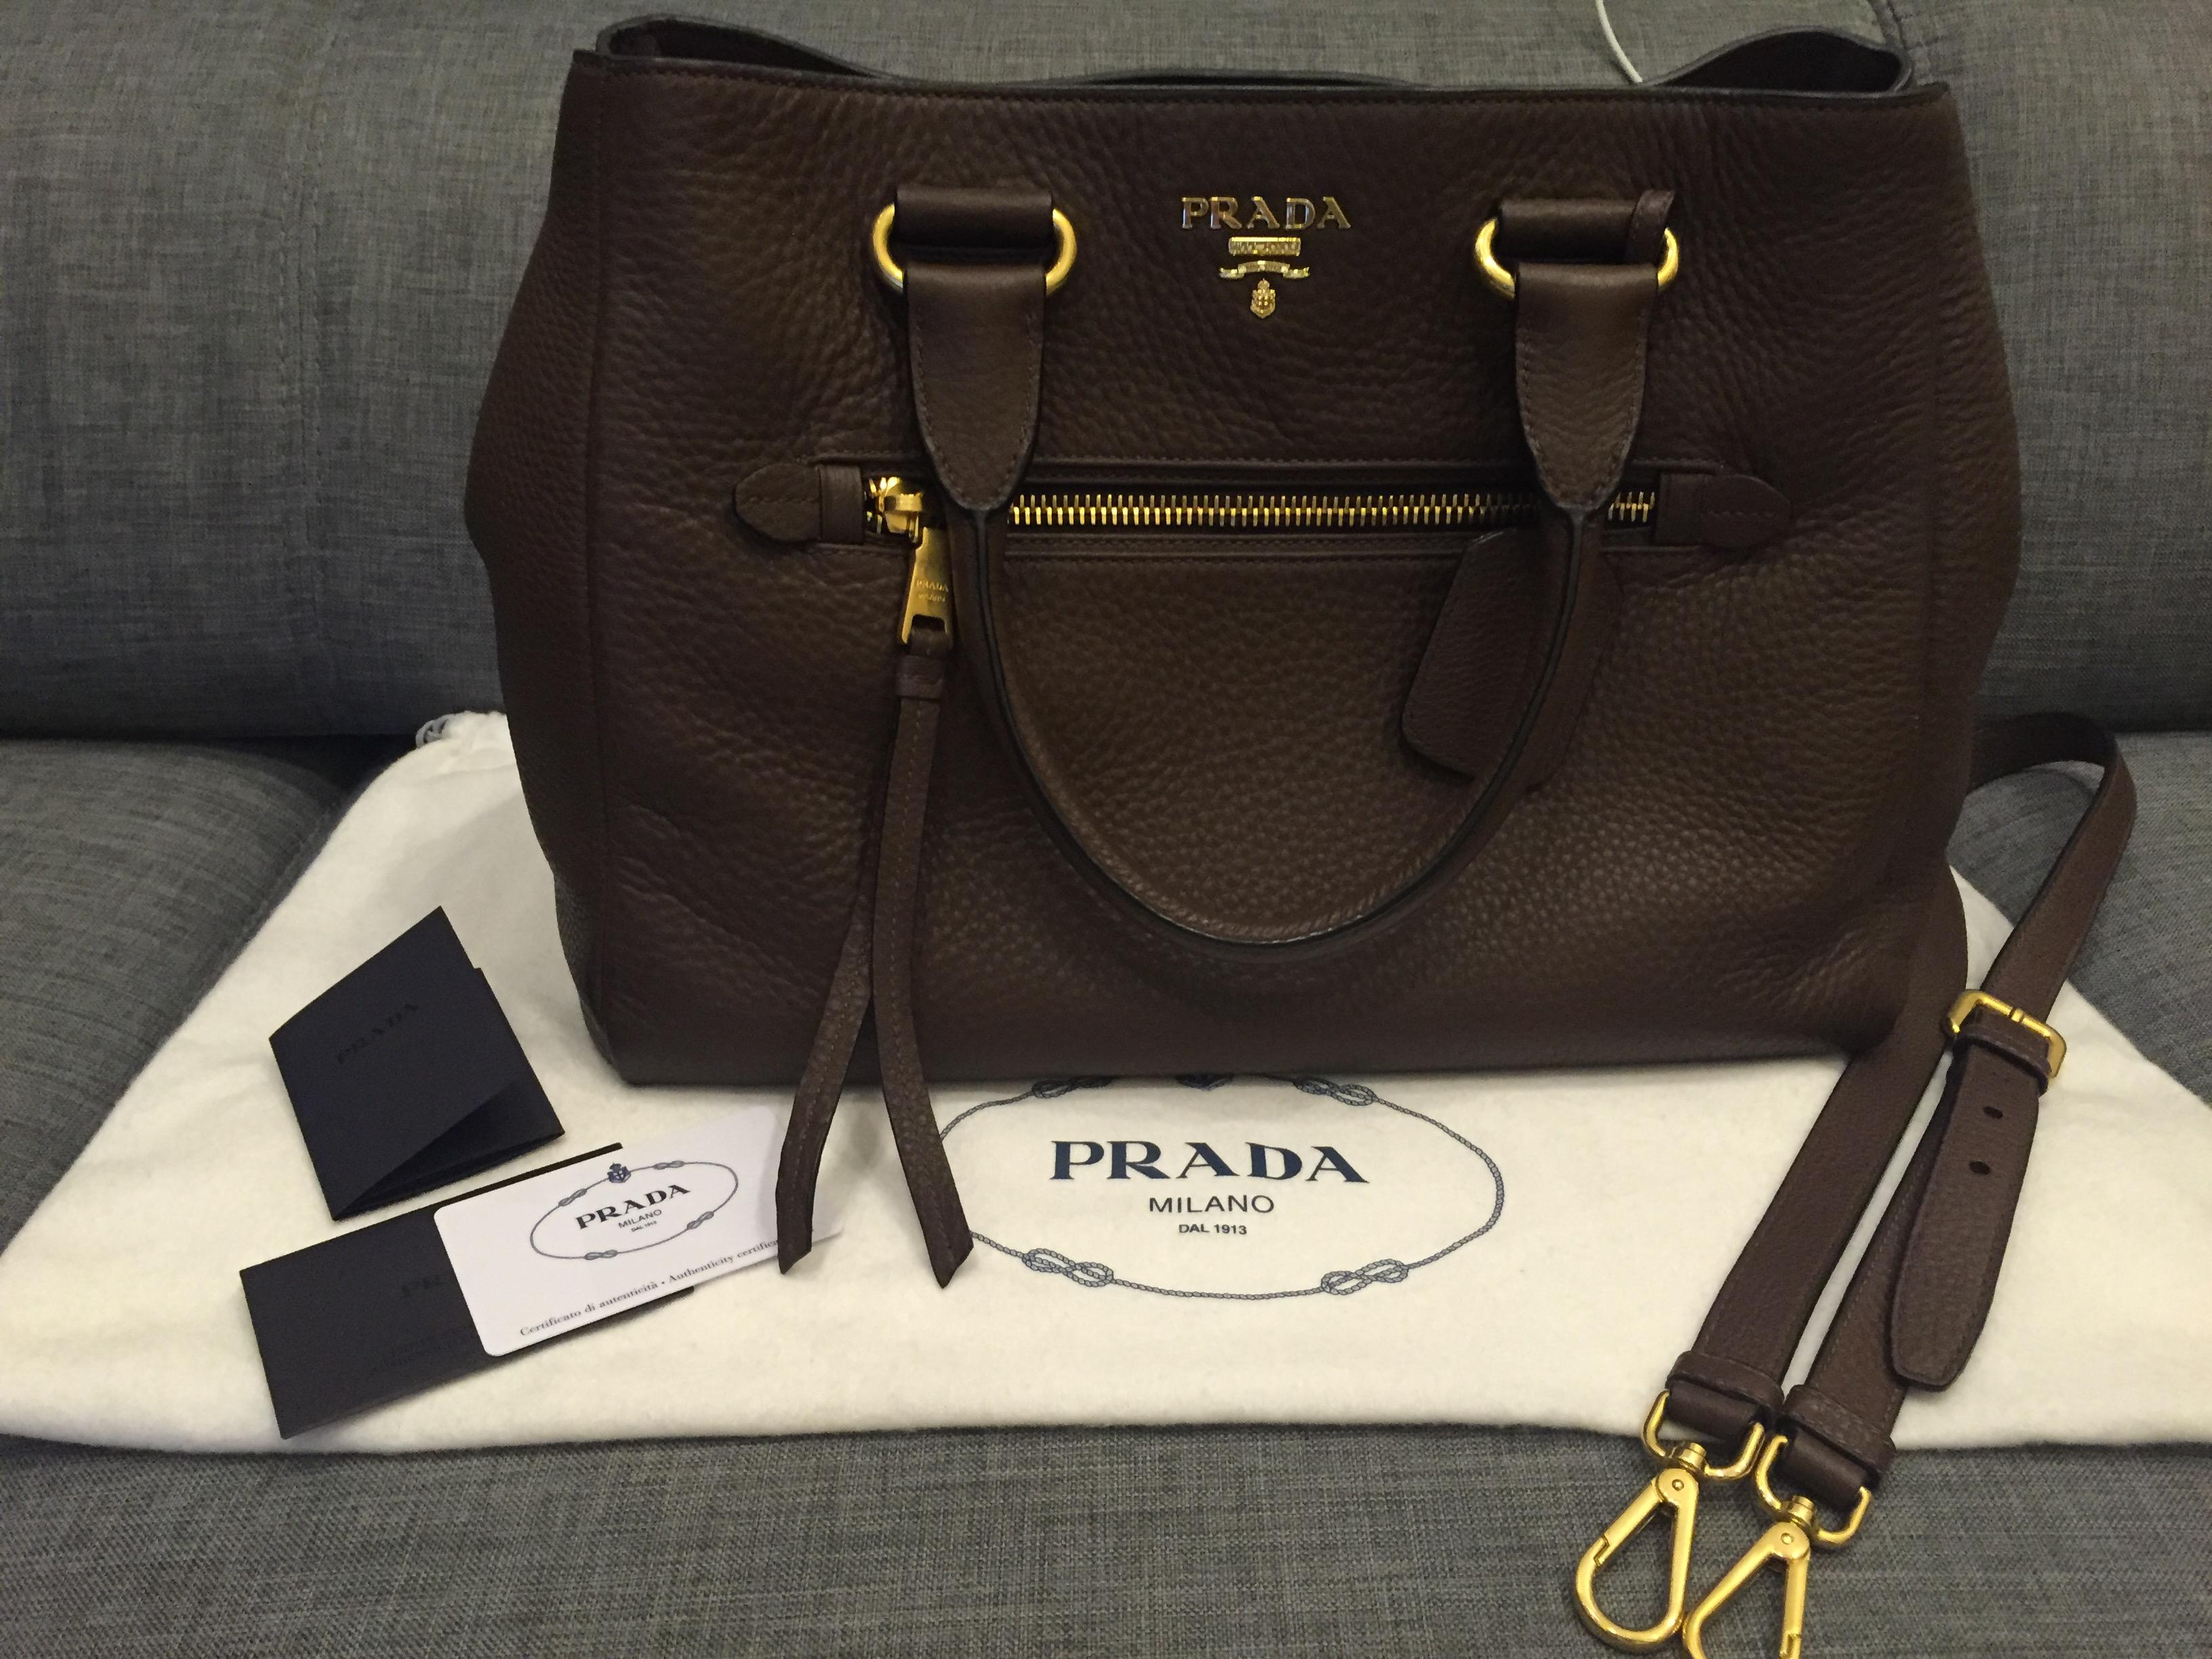 a14917d287 discount code for prada black vitello daino leather large shopping tote bag  bn2419 66aaa 6d8e3  uk bag come with shoulder sling strap. pm for more  details ...